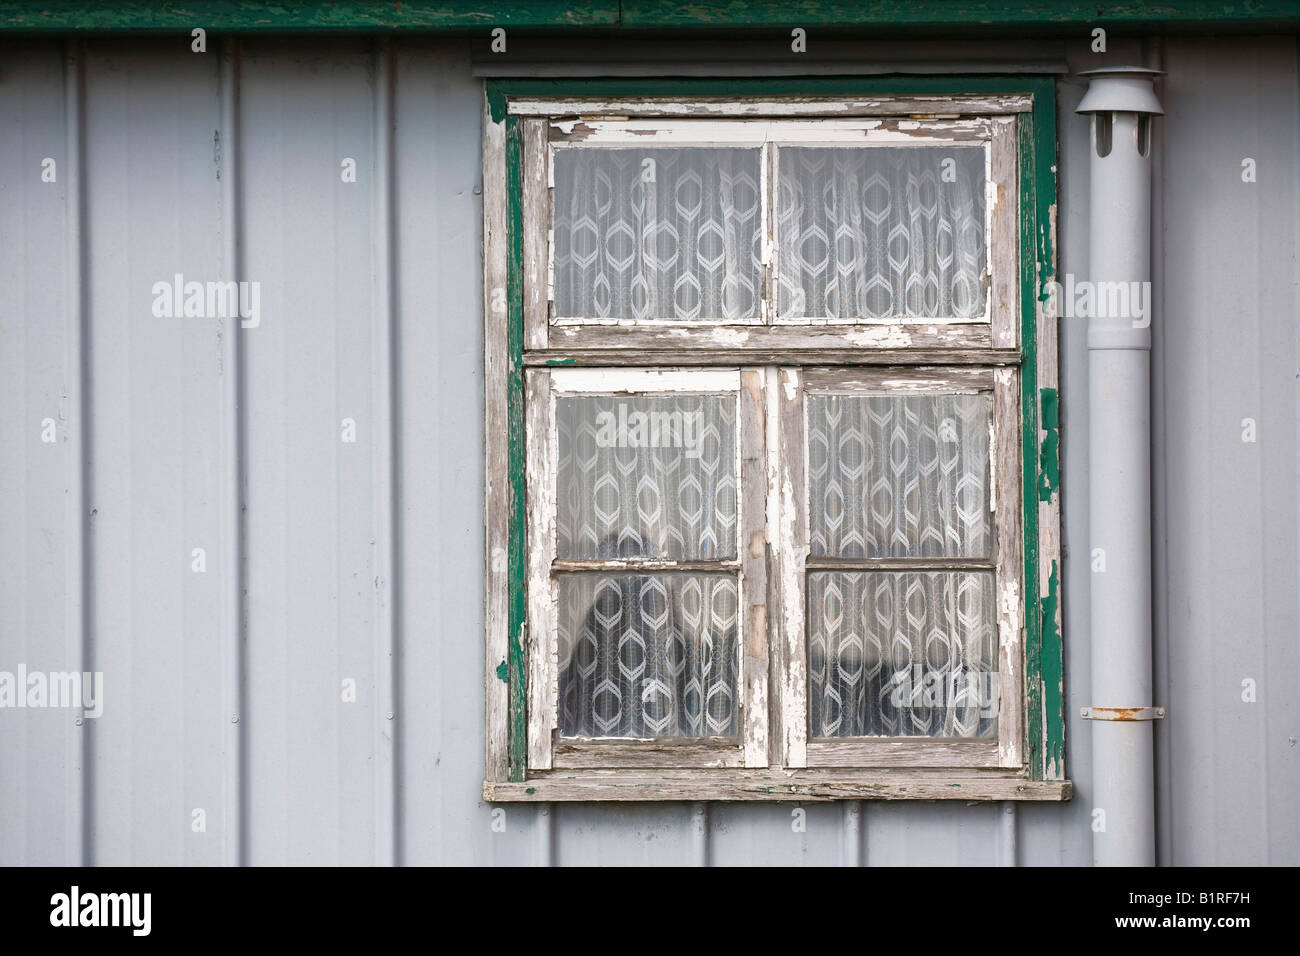 Neglected housing project, Westerhever, Nordfriesland or North Frisia, Schleswig-Holstein, Germany, Europe - Stock Image